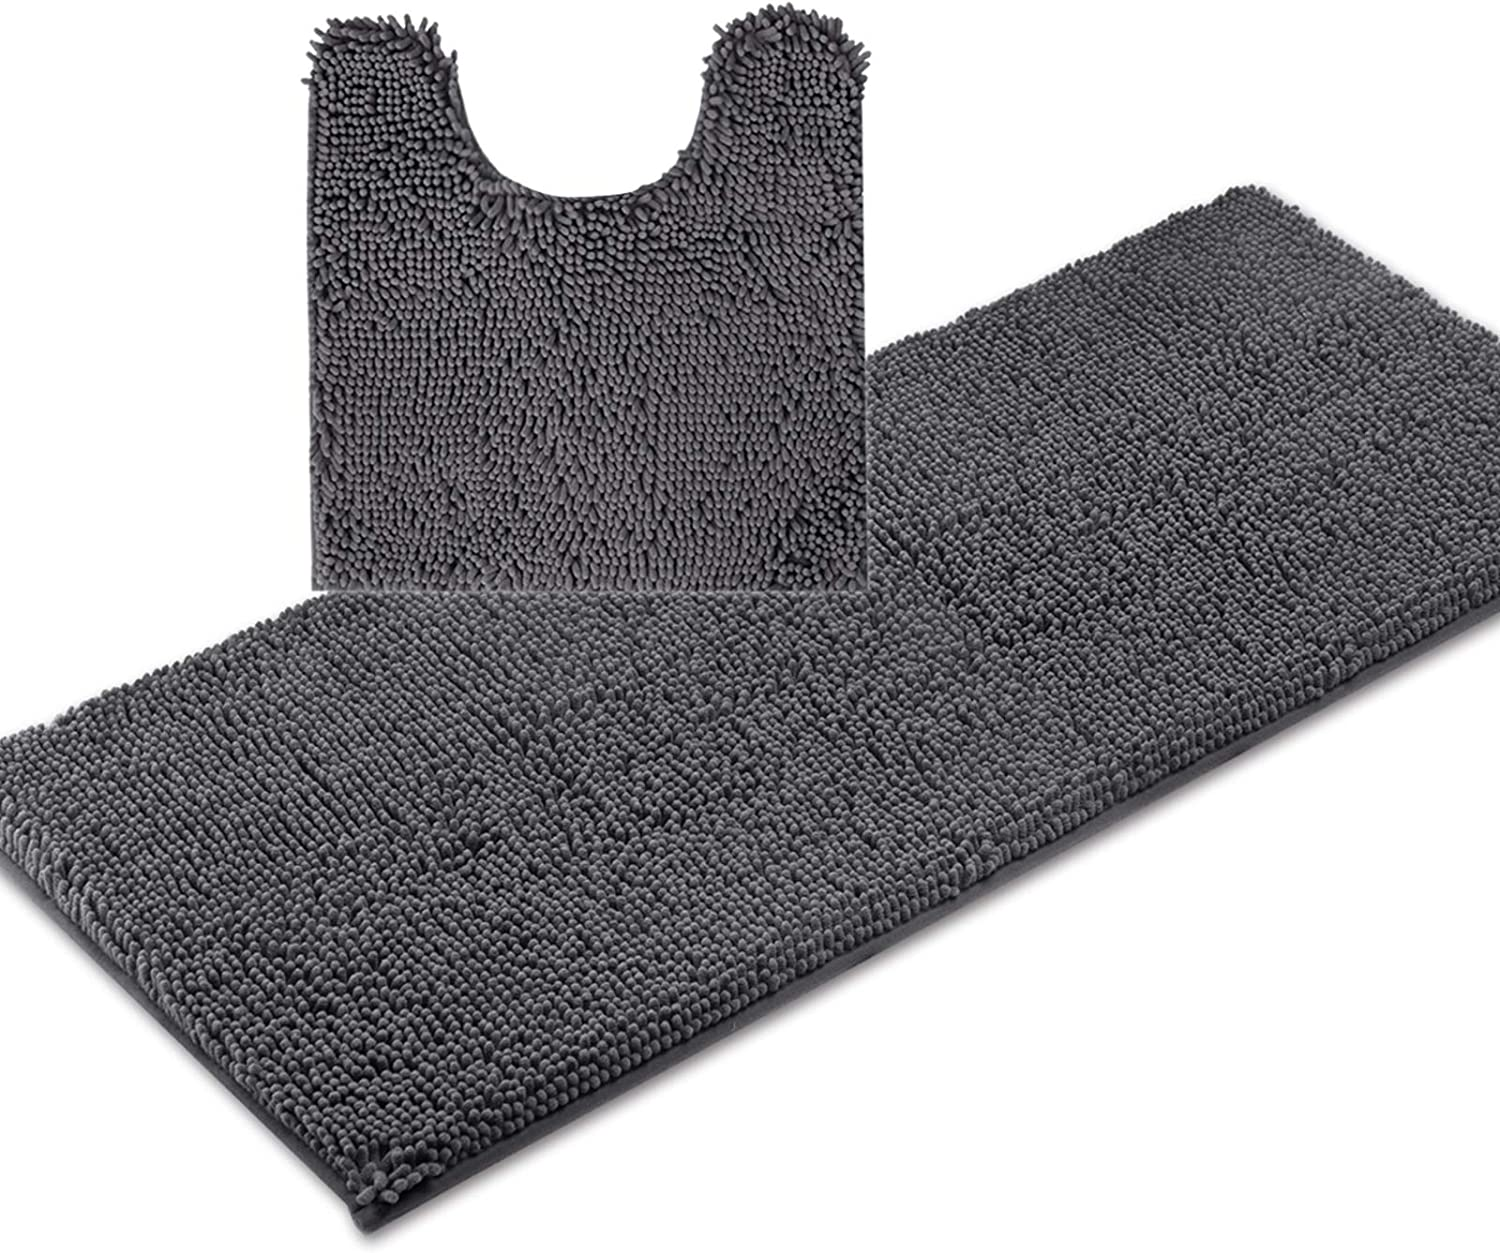 ITSOFT 2pc Non-Slip Shaggy Chenille Bathroom Mat Set, Includes 21 x 24 Inches U-Shaped Contour Toilet Mat and 21 x 47 Inches Bath Mat, Machine Washable, Charcoal Gray